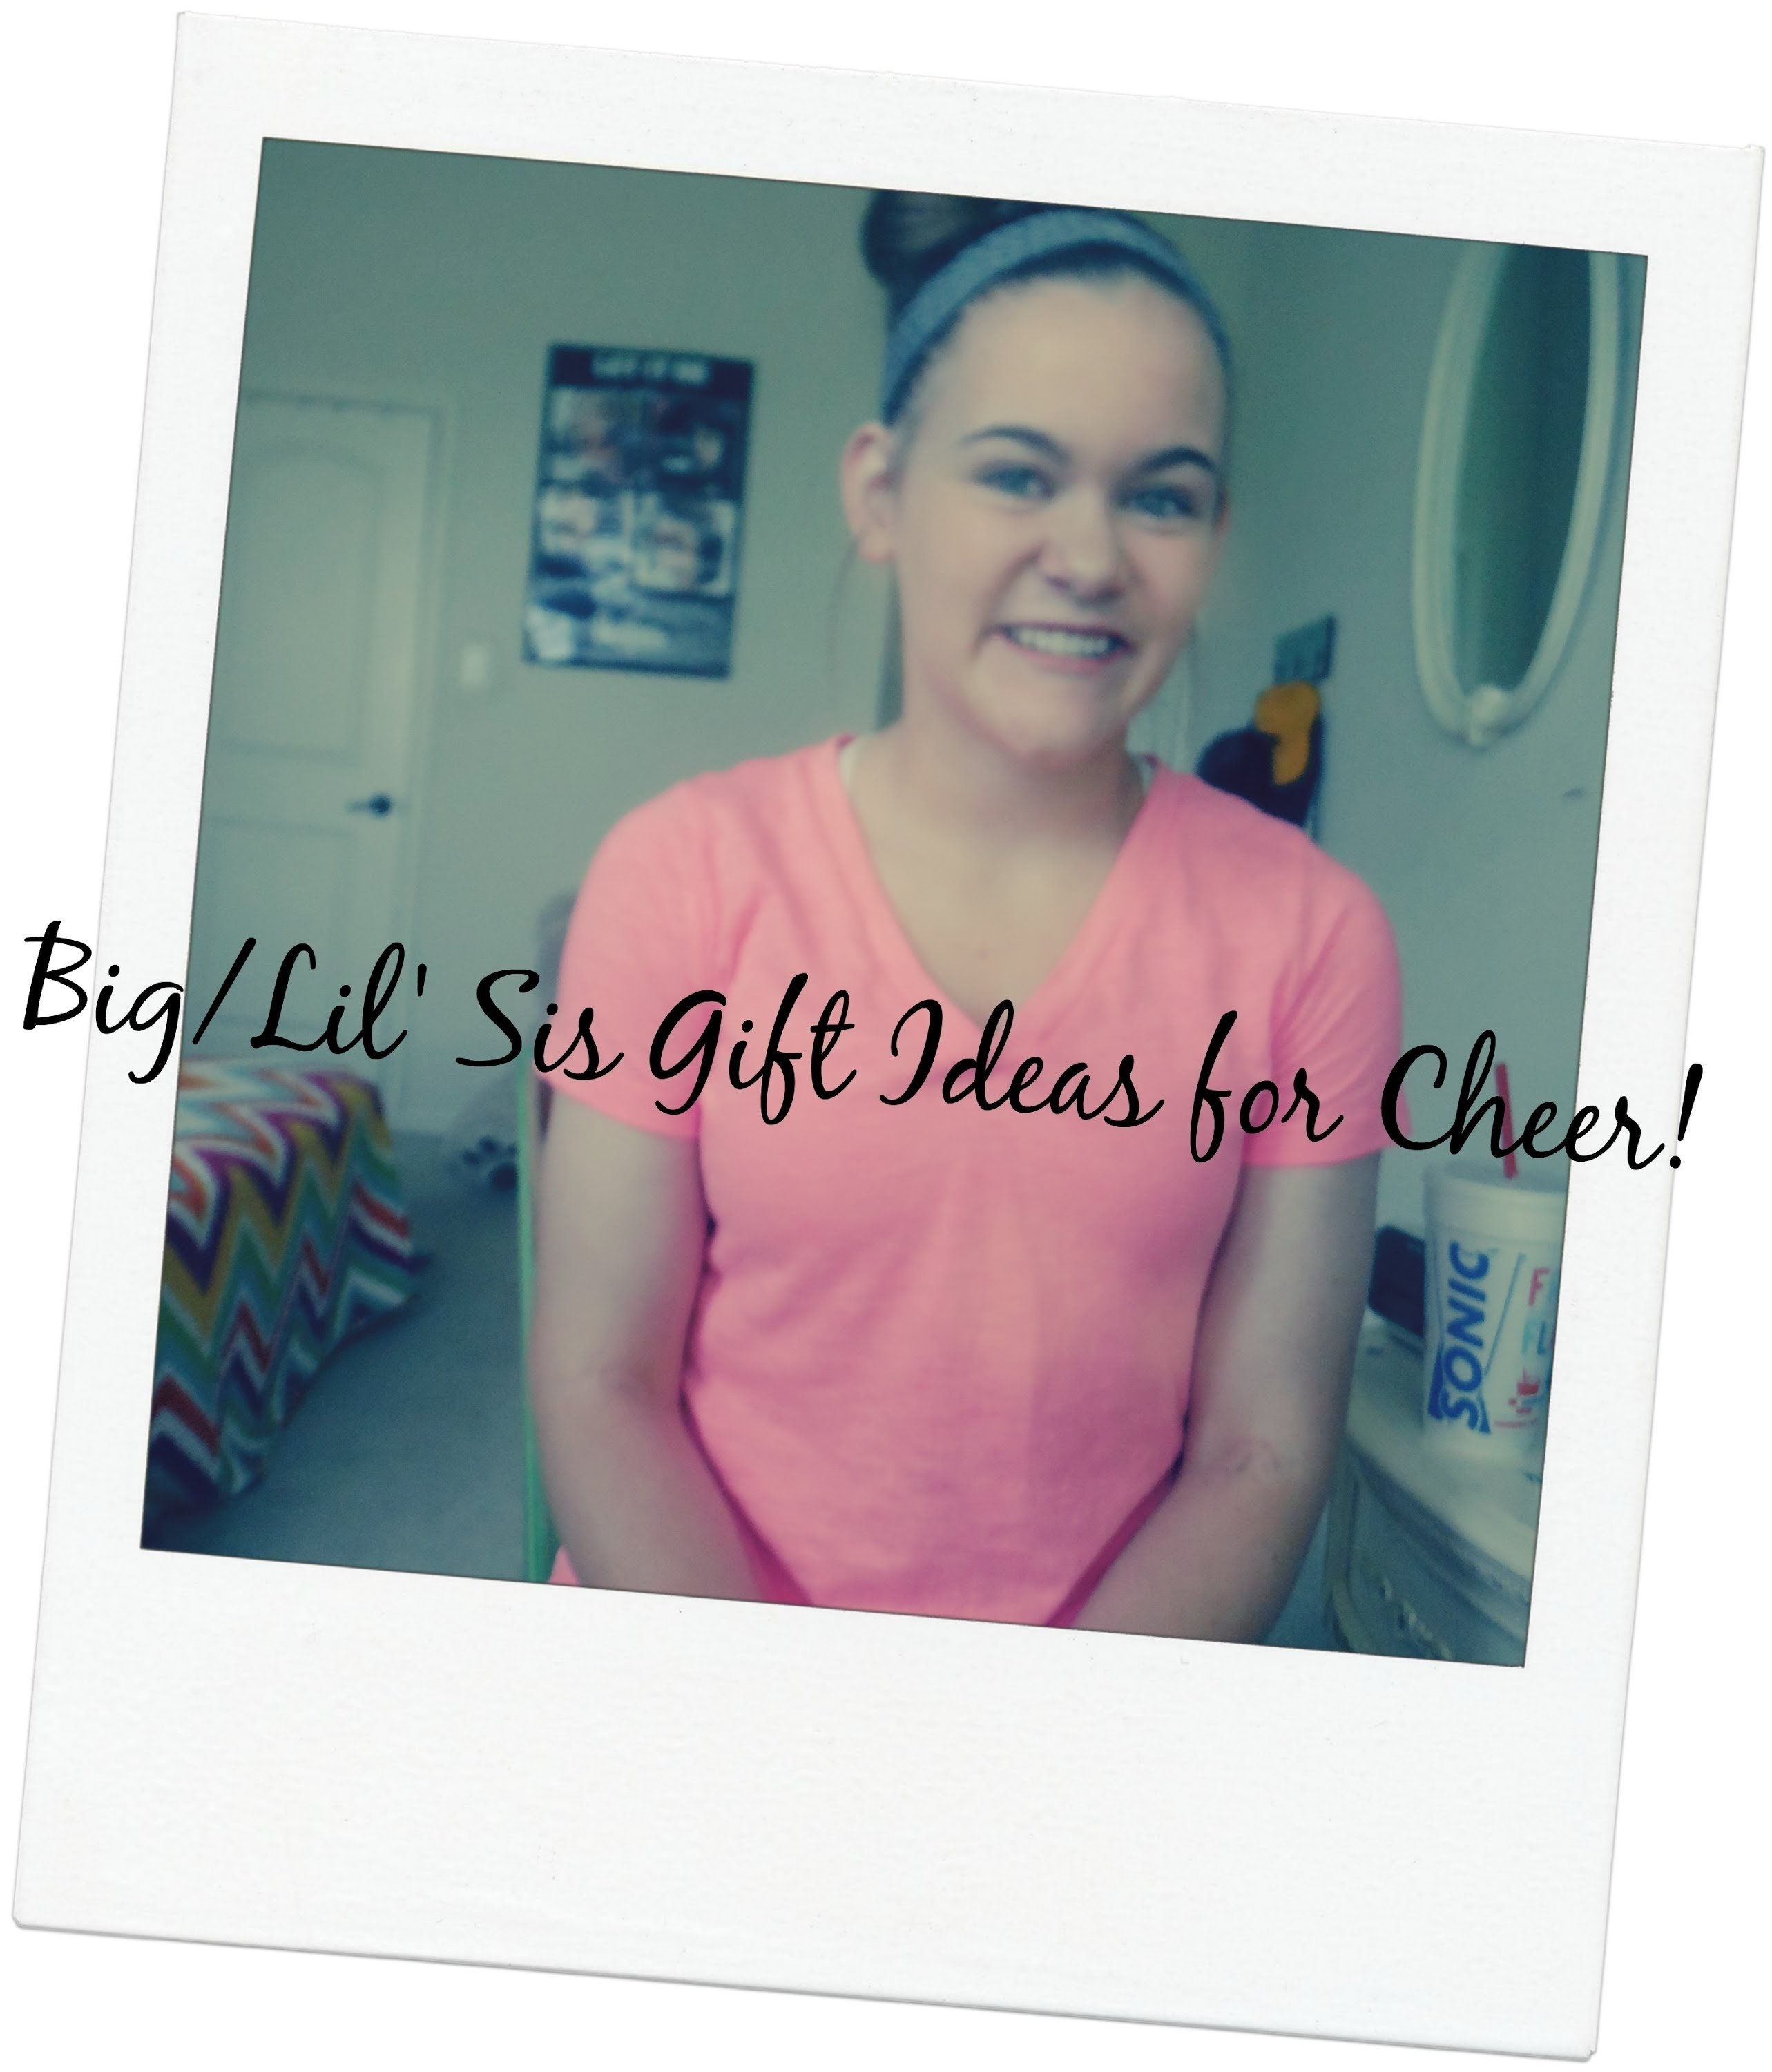 10 Nice Gift Ideas For Little Sister cheer big lil sister gift ideasashlyn eikelbarner youtube